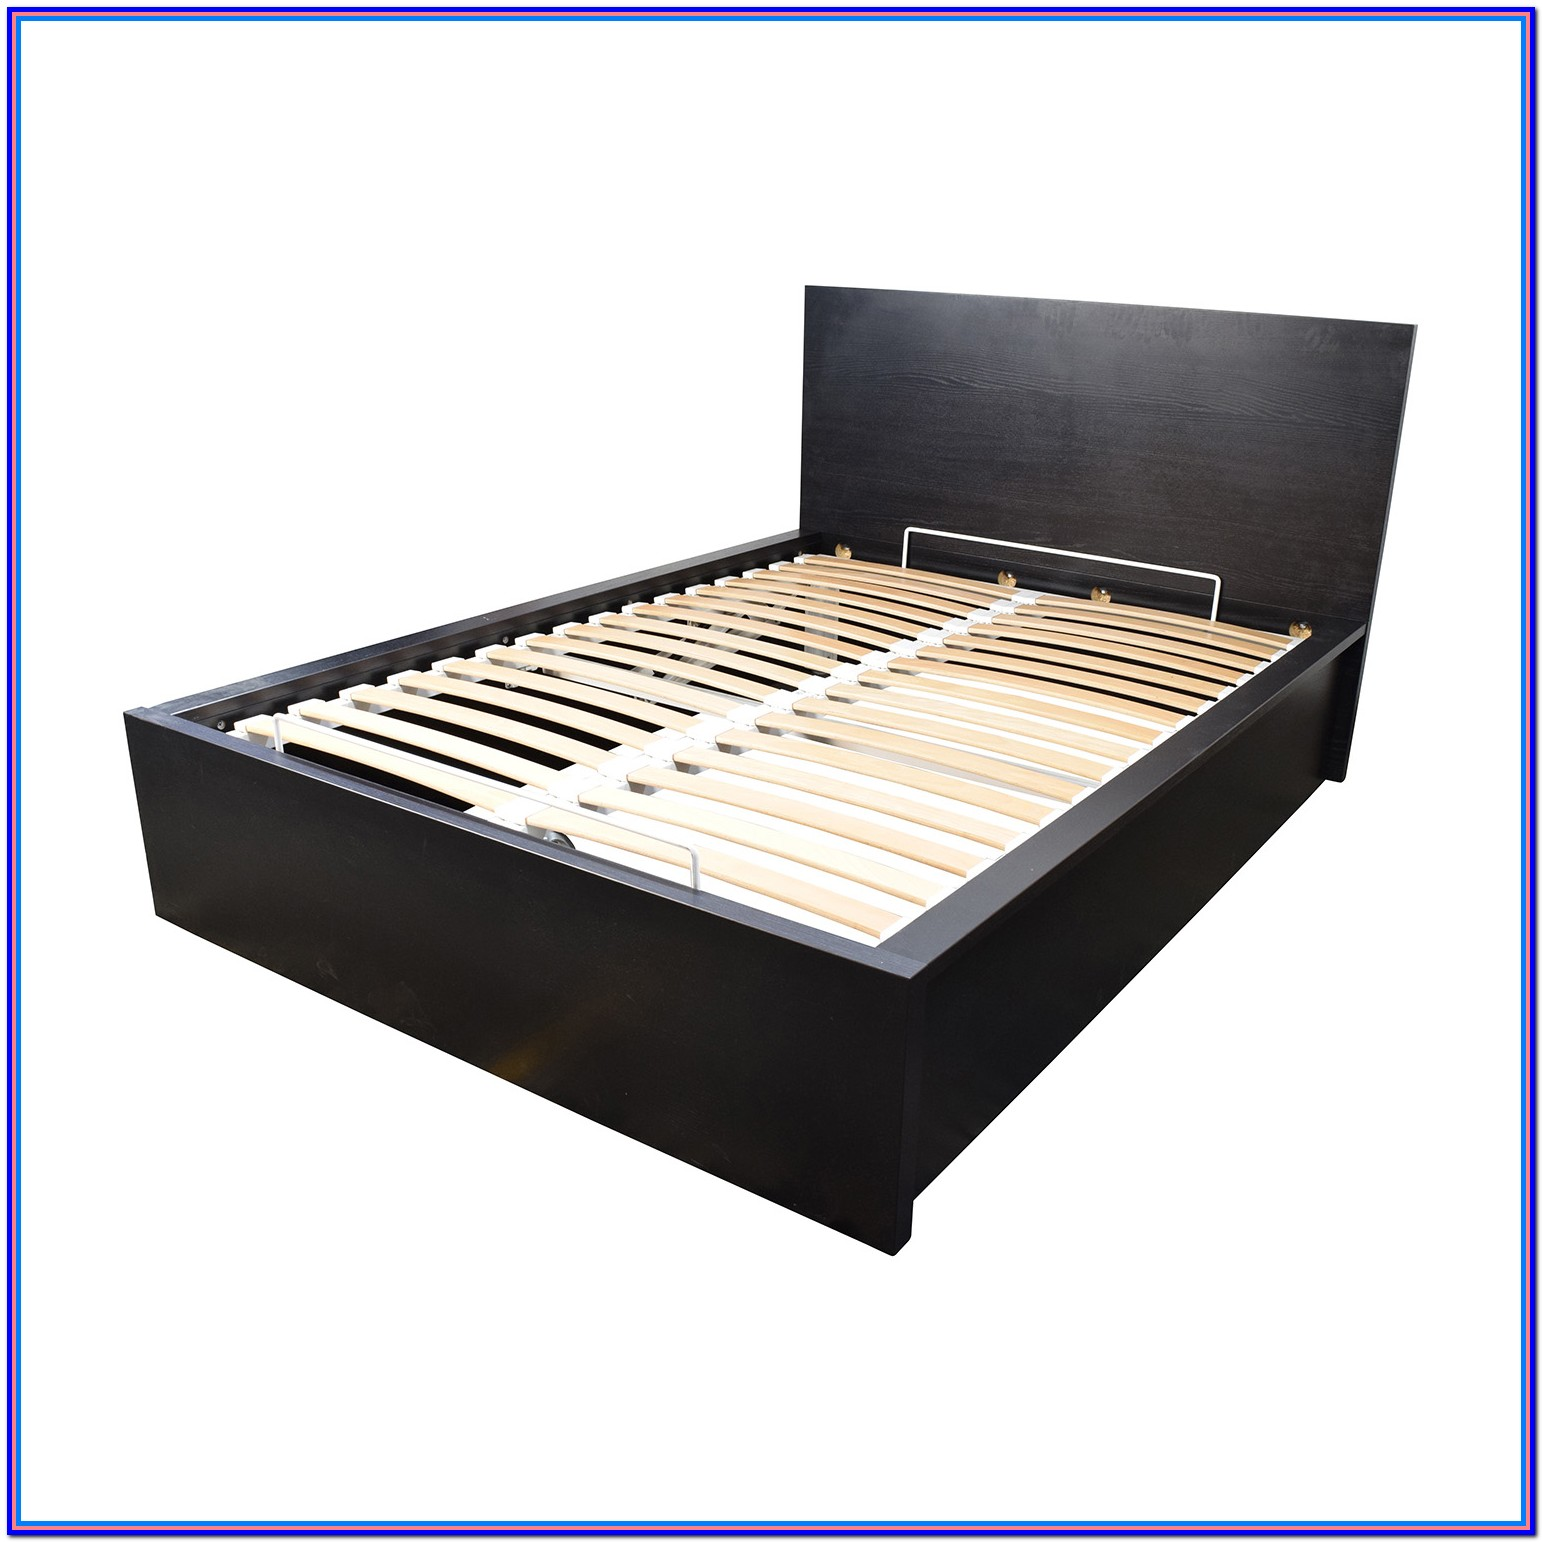 Bed With Storage Underneath Queen